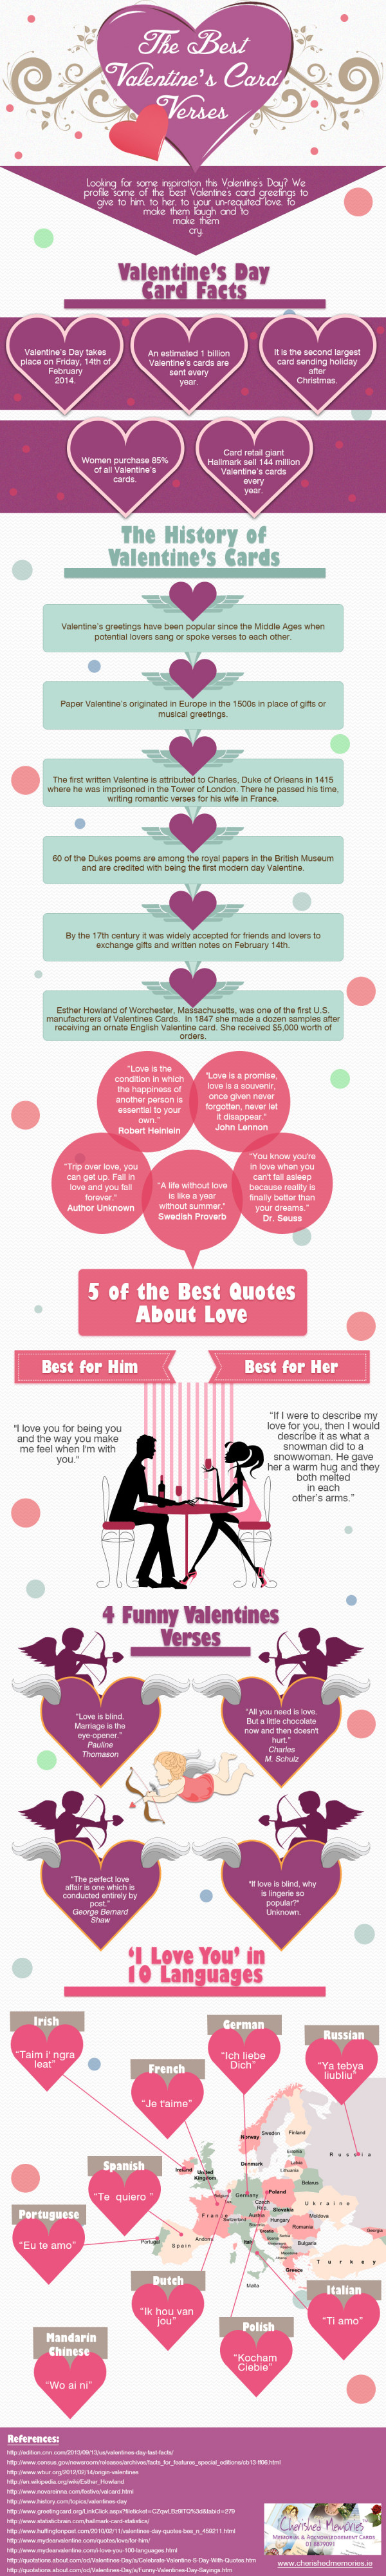 The Best Valentine's Card Verses